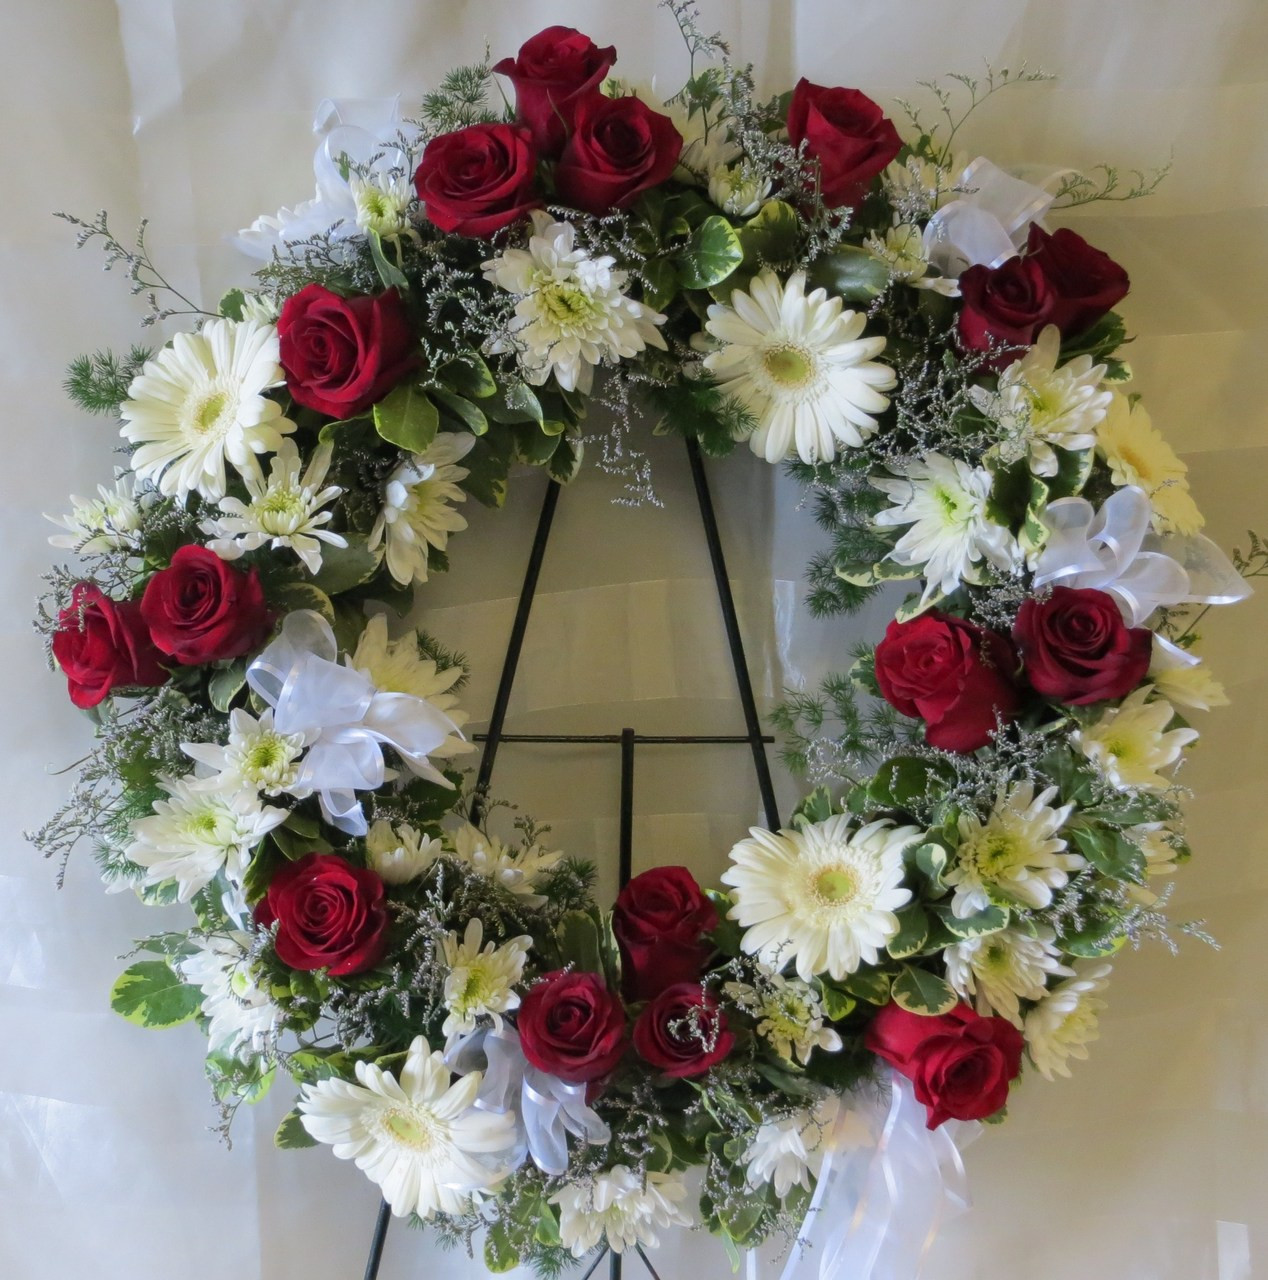 Divine Wreath of red roses and white gerberas for sympathy floral delivery in